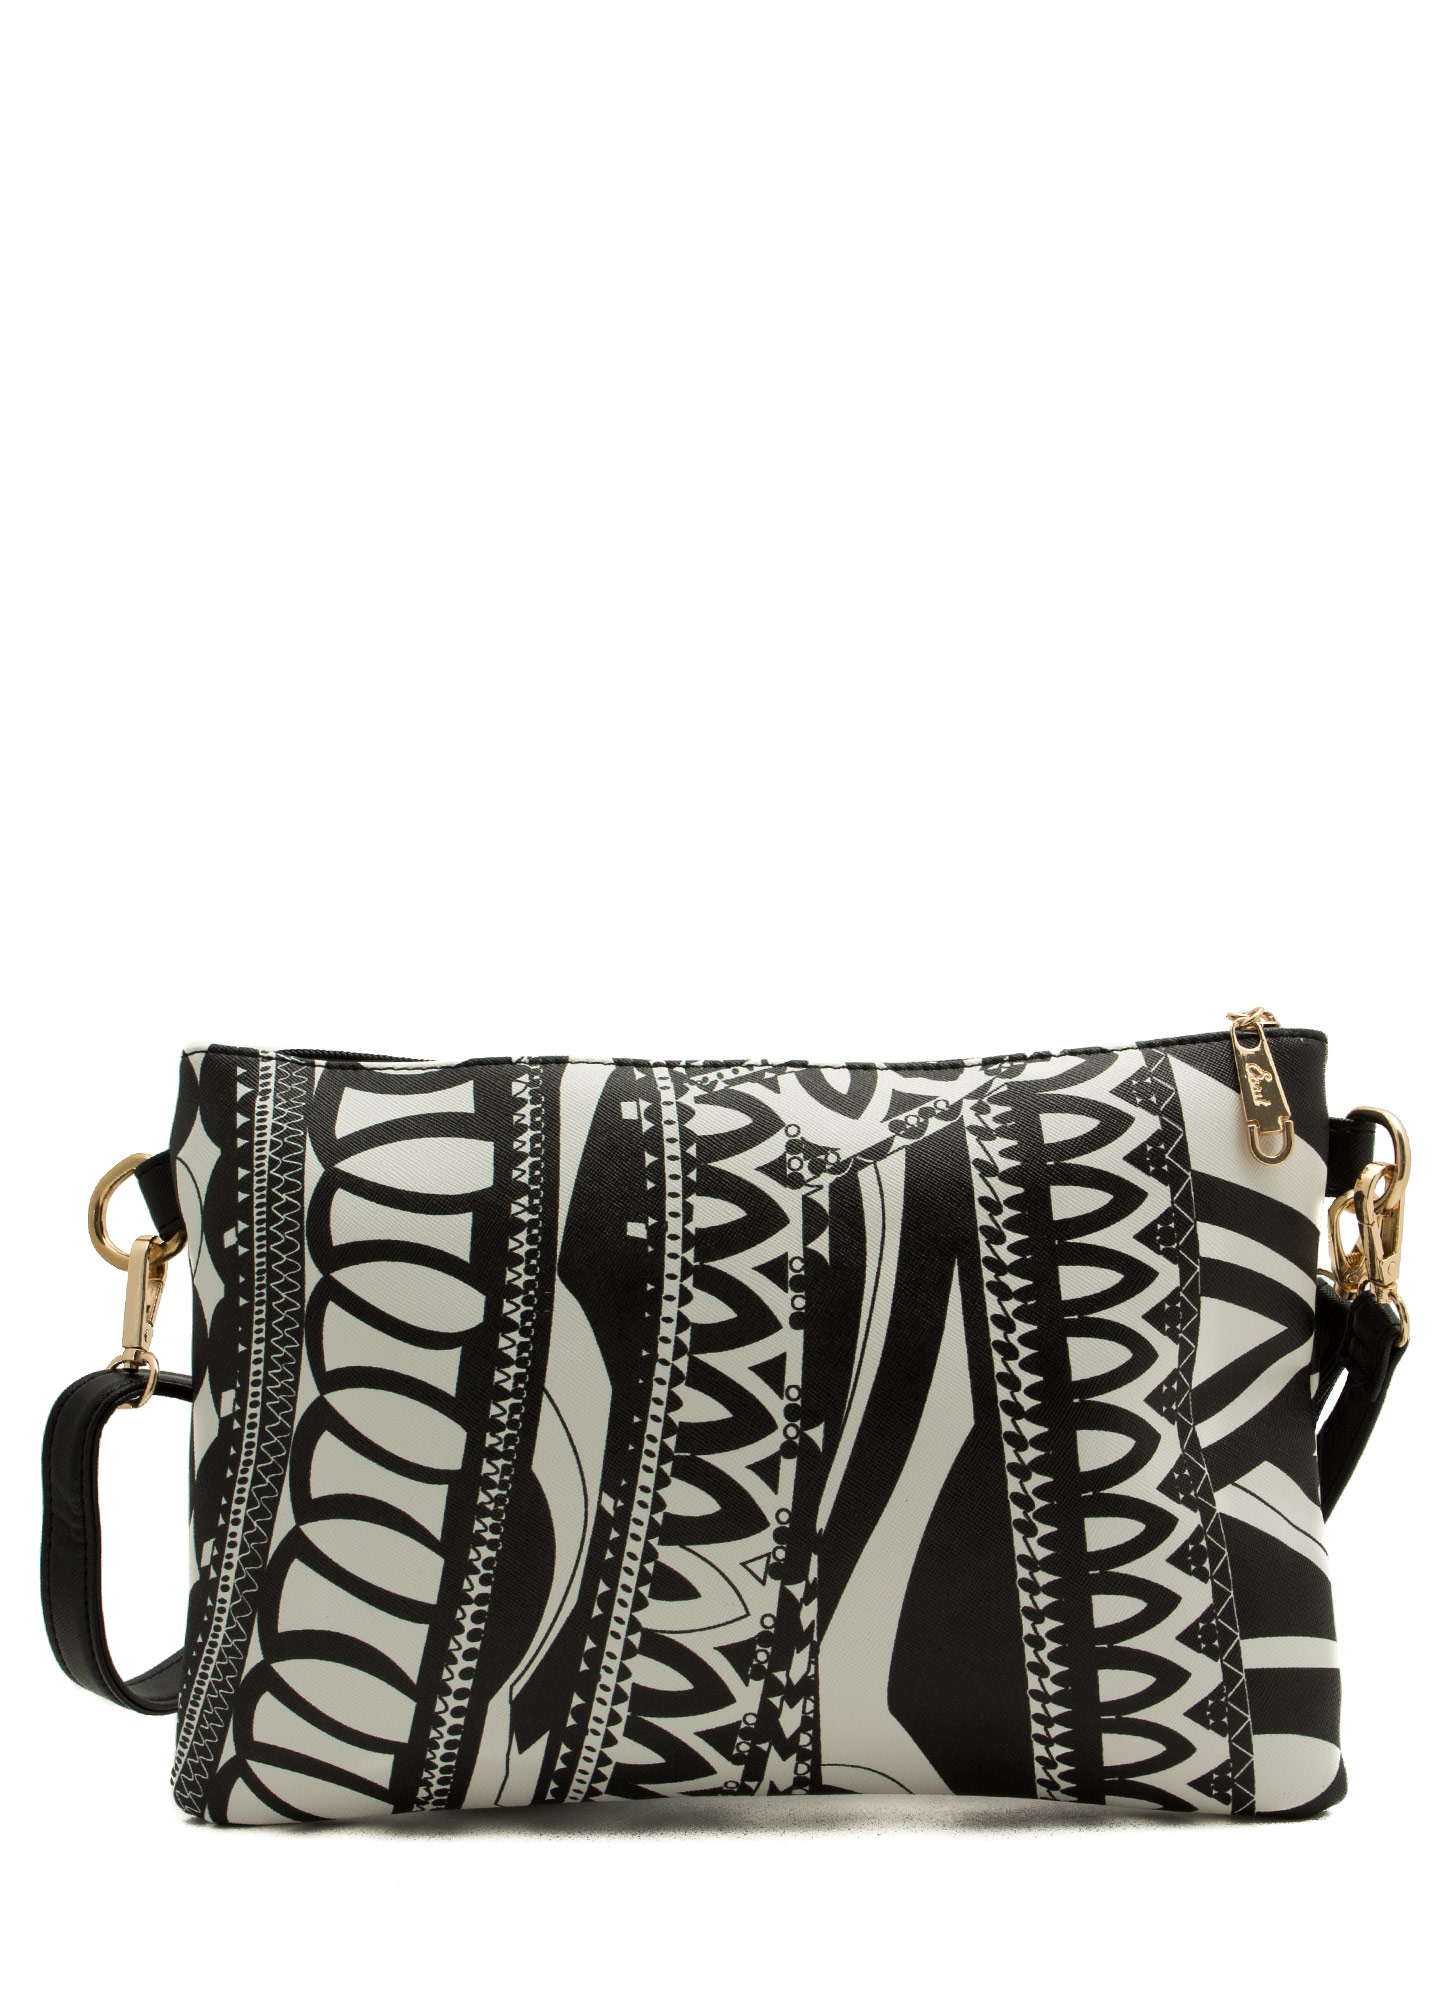 Contrasting Patterned Clutch BLACKWHITE